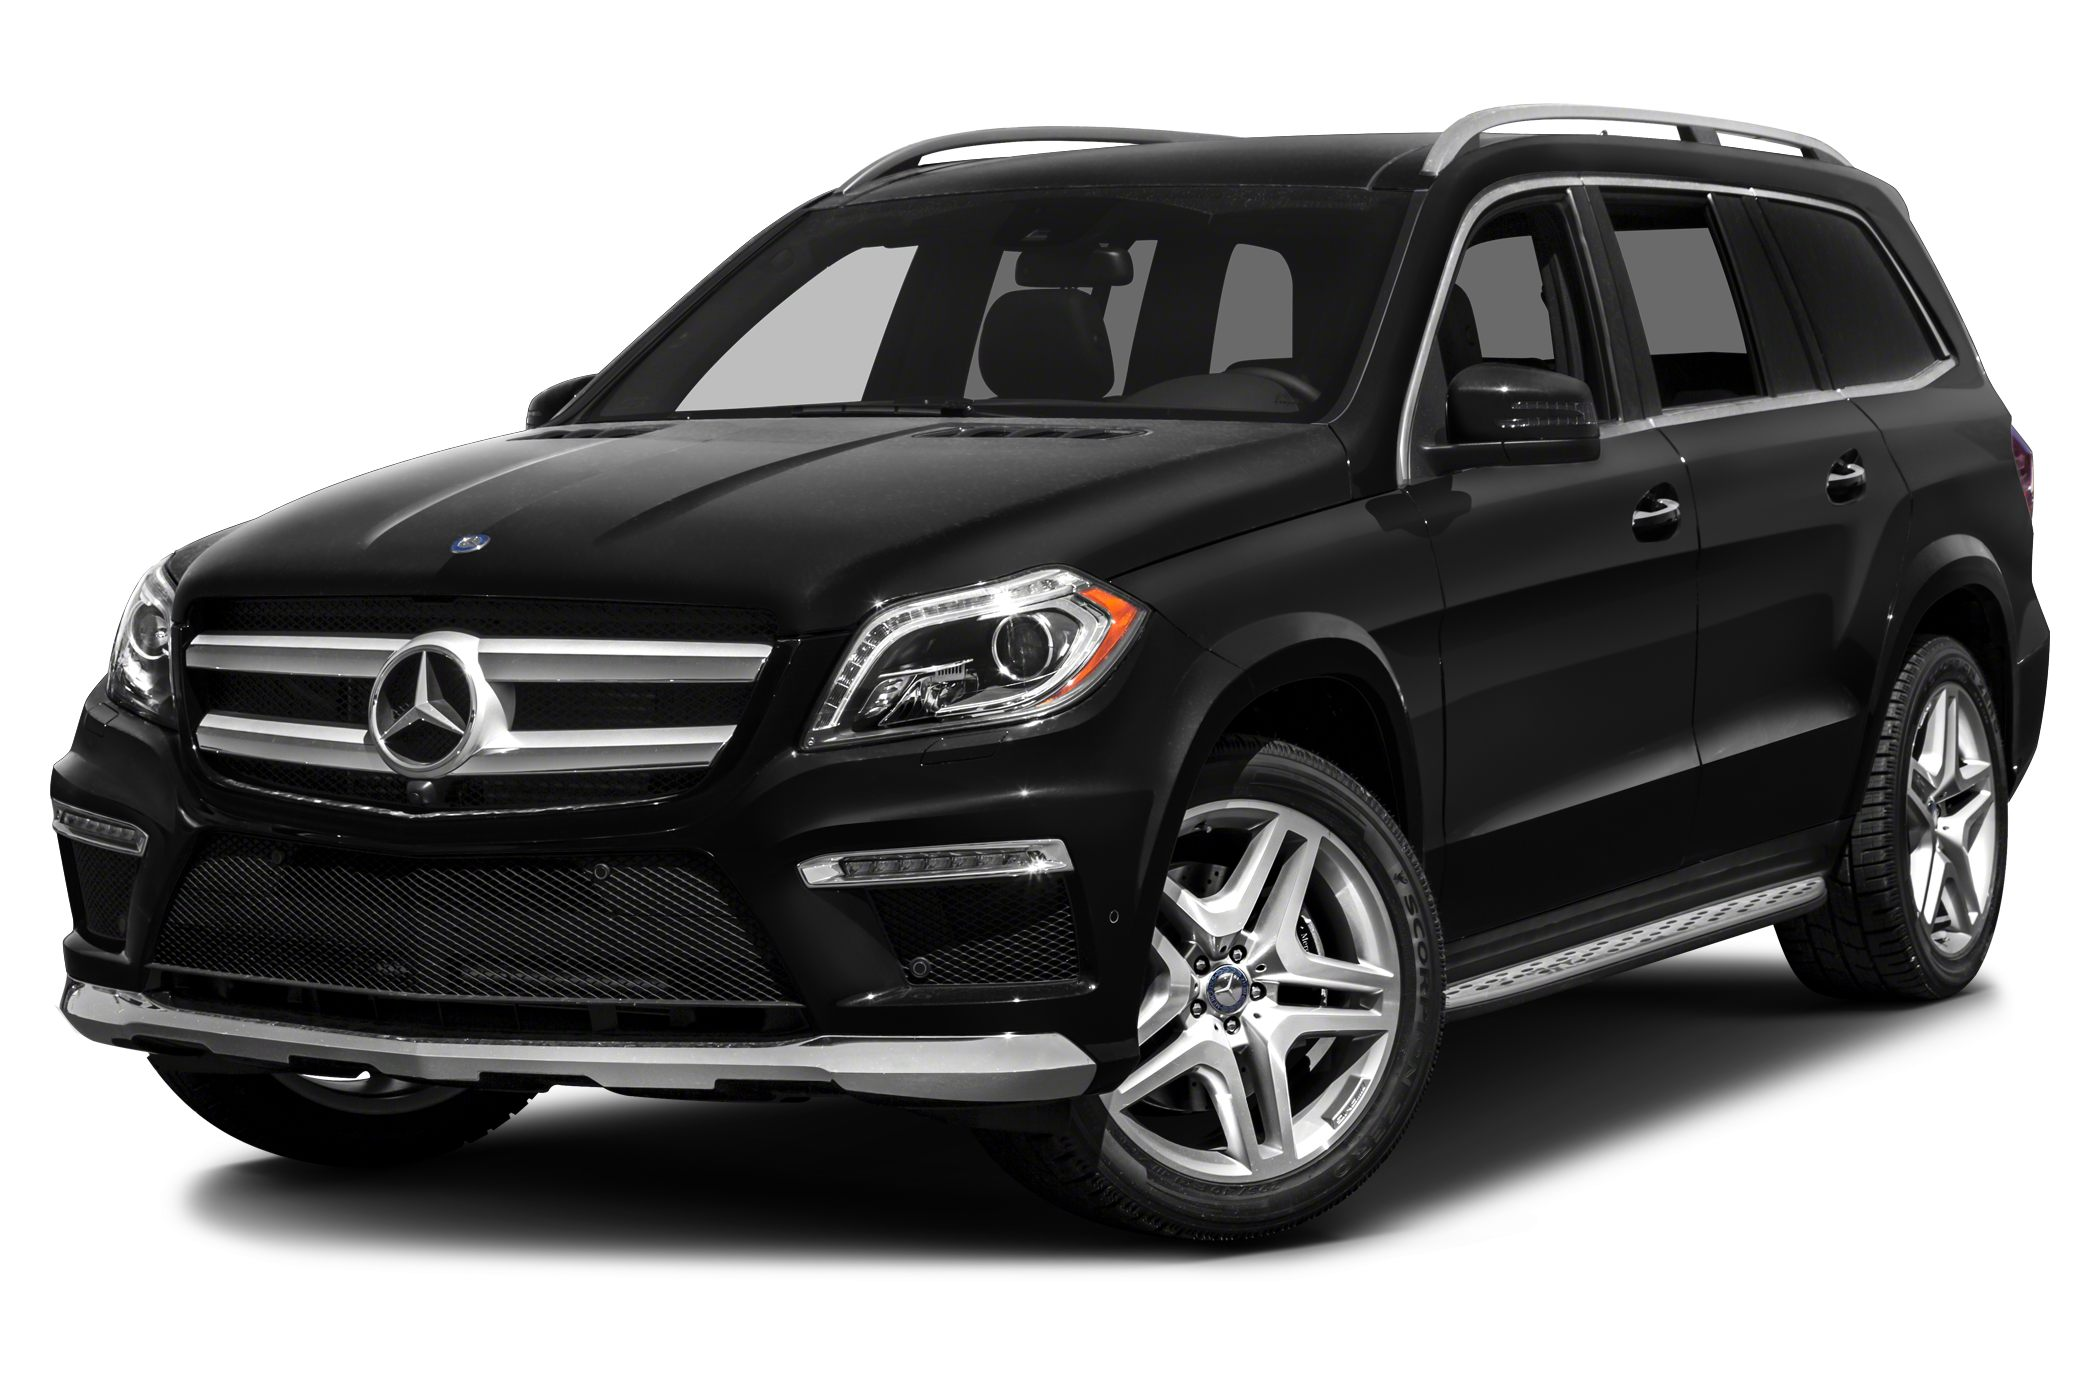 2015 Mercedes-Benz GL-Class GL350 BlueTEC 4MATIC SUV for sale in Miami for $75,550 with 5 miles